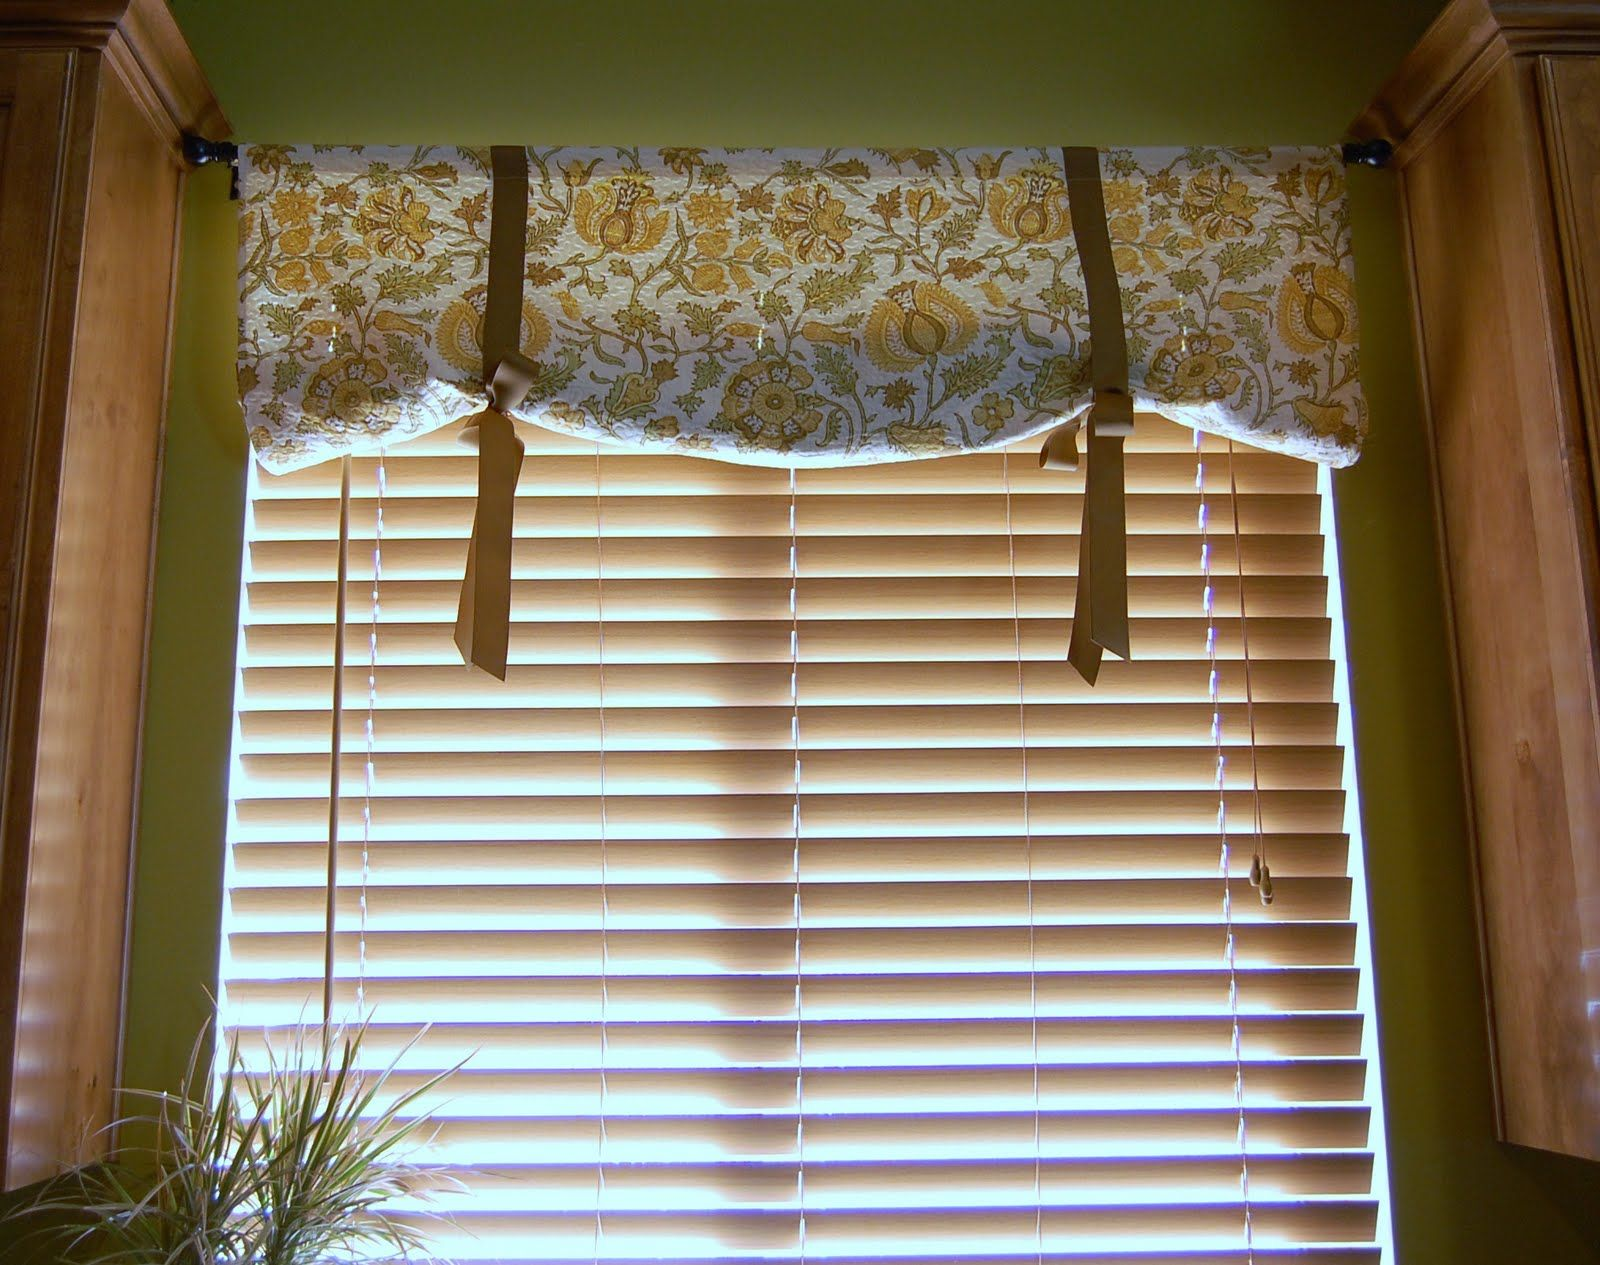 Tie Up Shade Diy Google Search Curtain Decor Cool Curtains